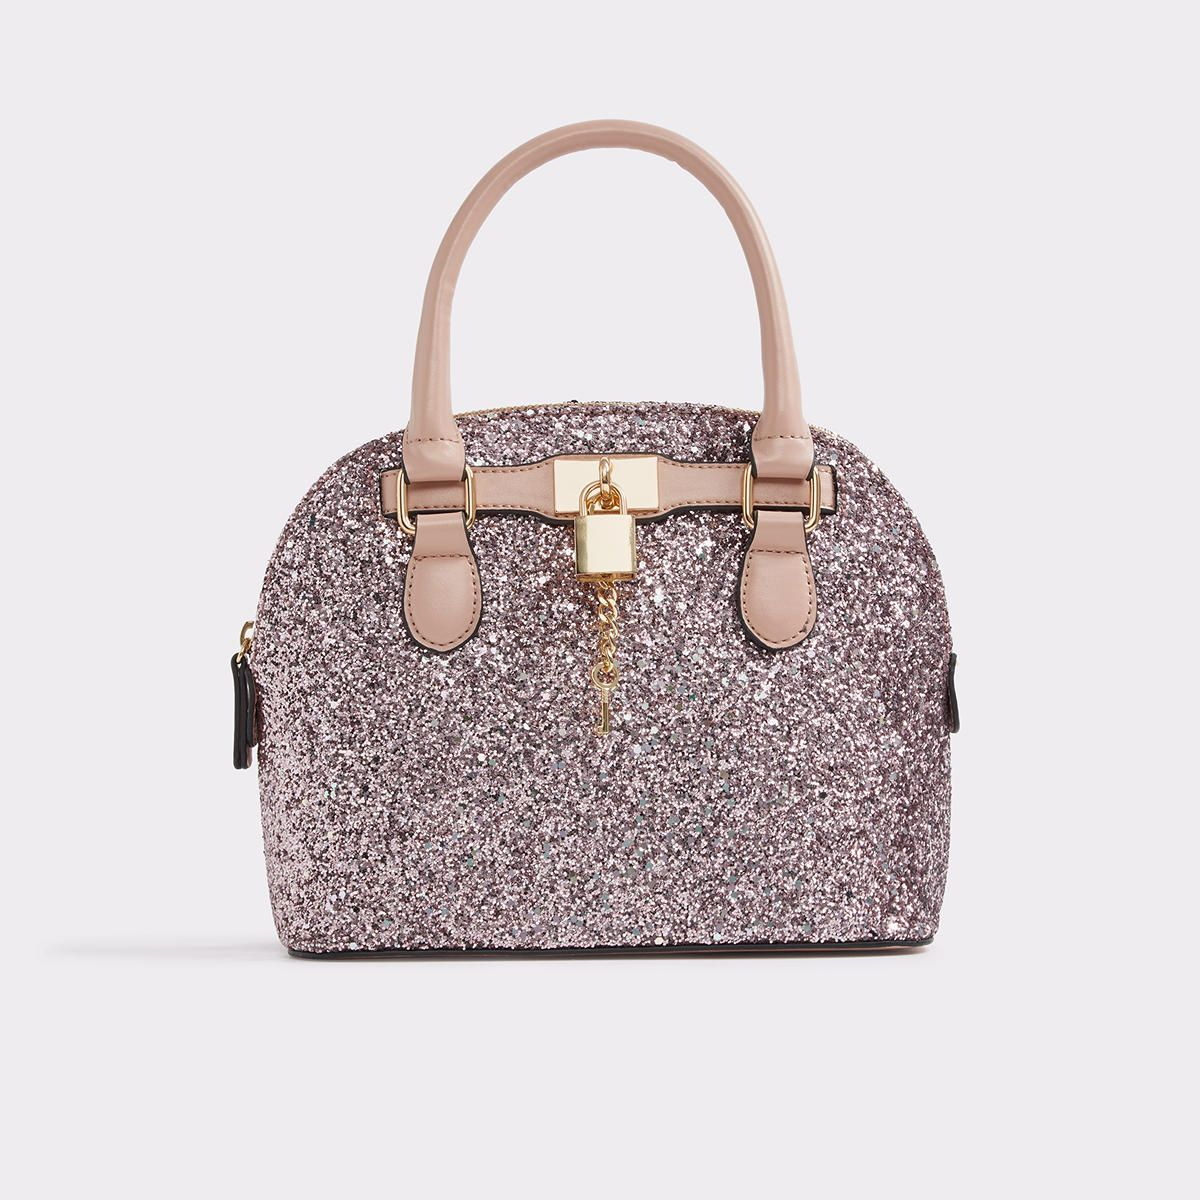 Women's Handbags | ALDO US